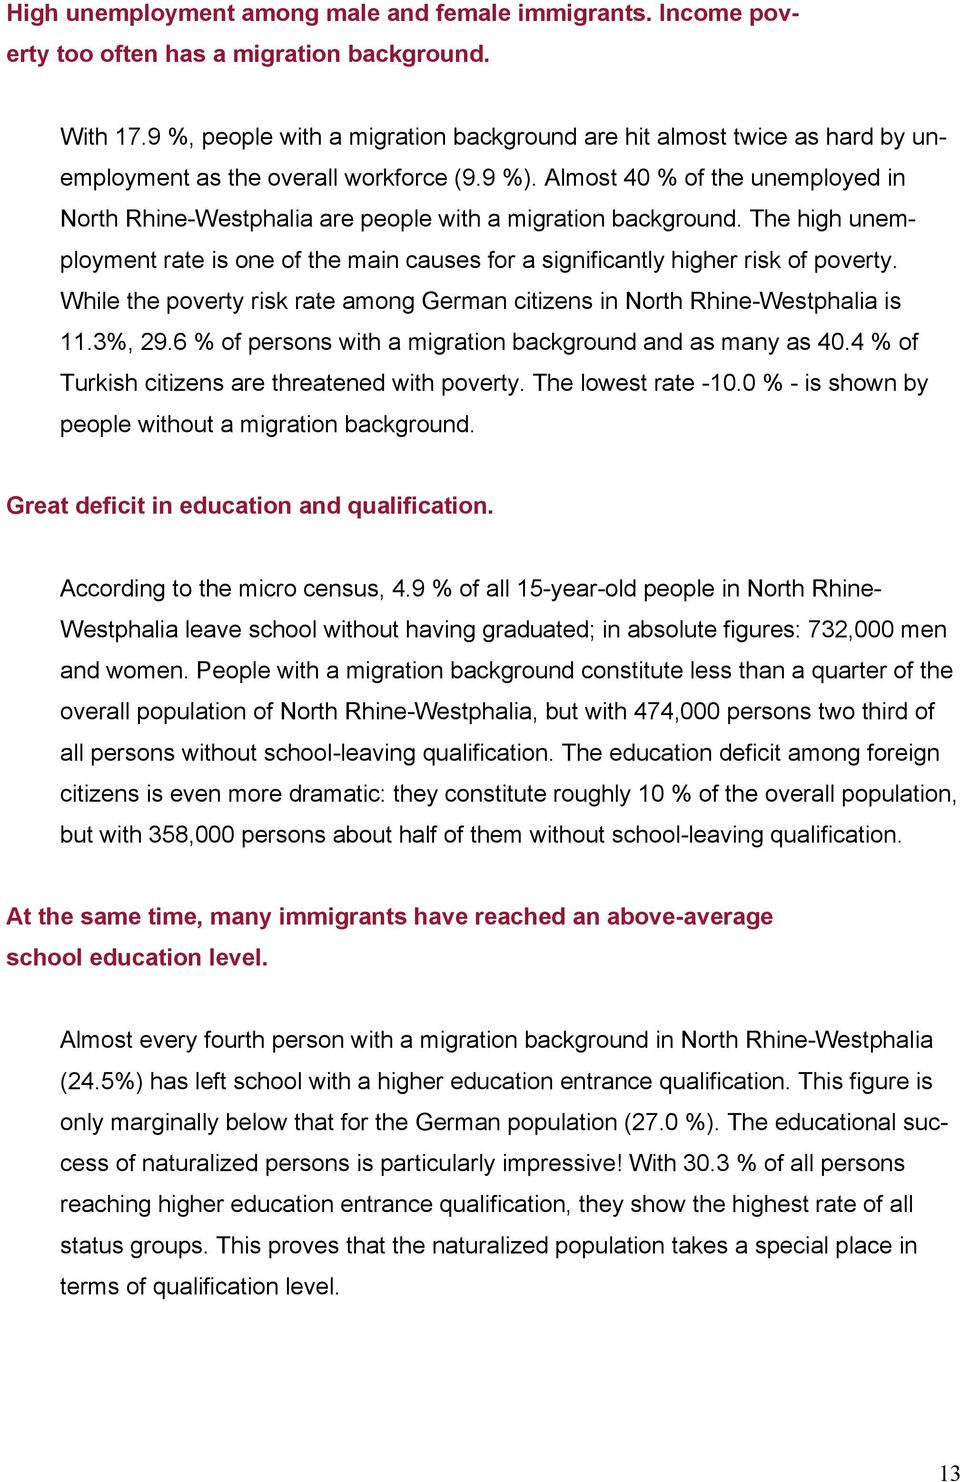 Almost 40 % of the unemployed in North Rhine-Westphalia are people with a migration background. The high unemployment rate is one of the main causes for a significantly higher risk of poverty.